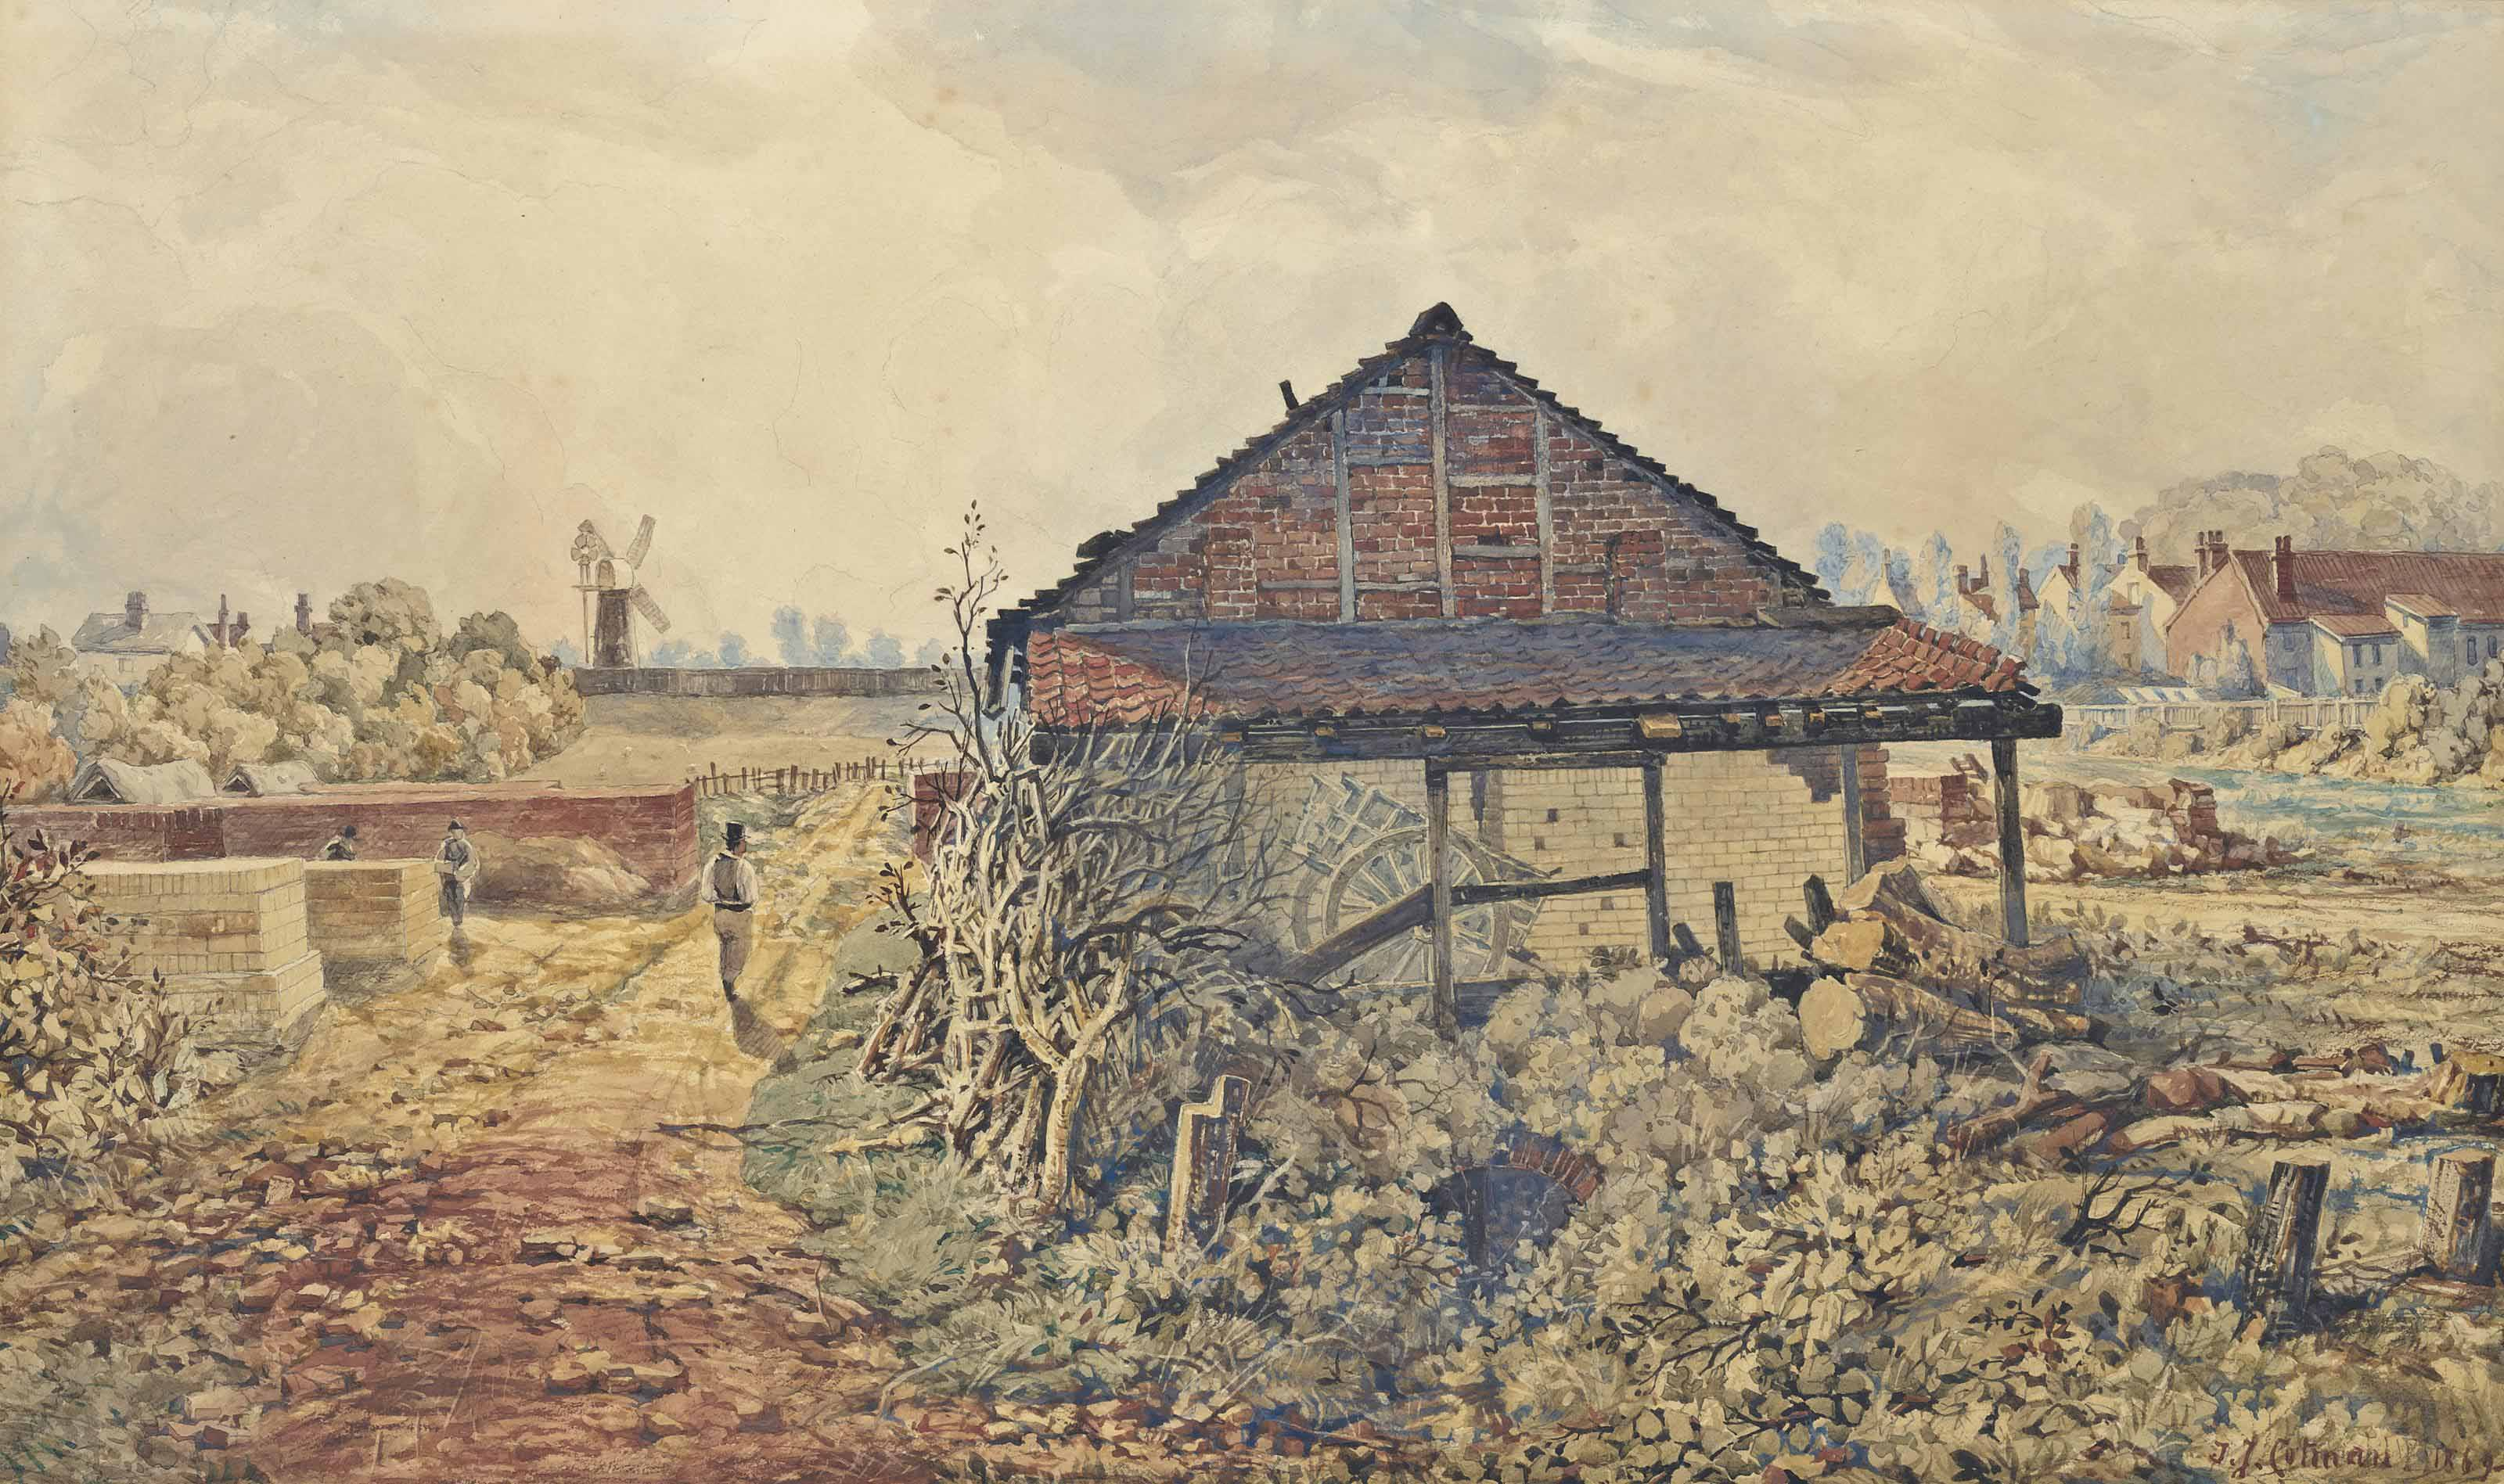 A Brickmaker's Yard; and Figures on a country lane (one illustrated)